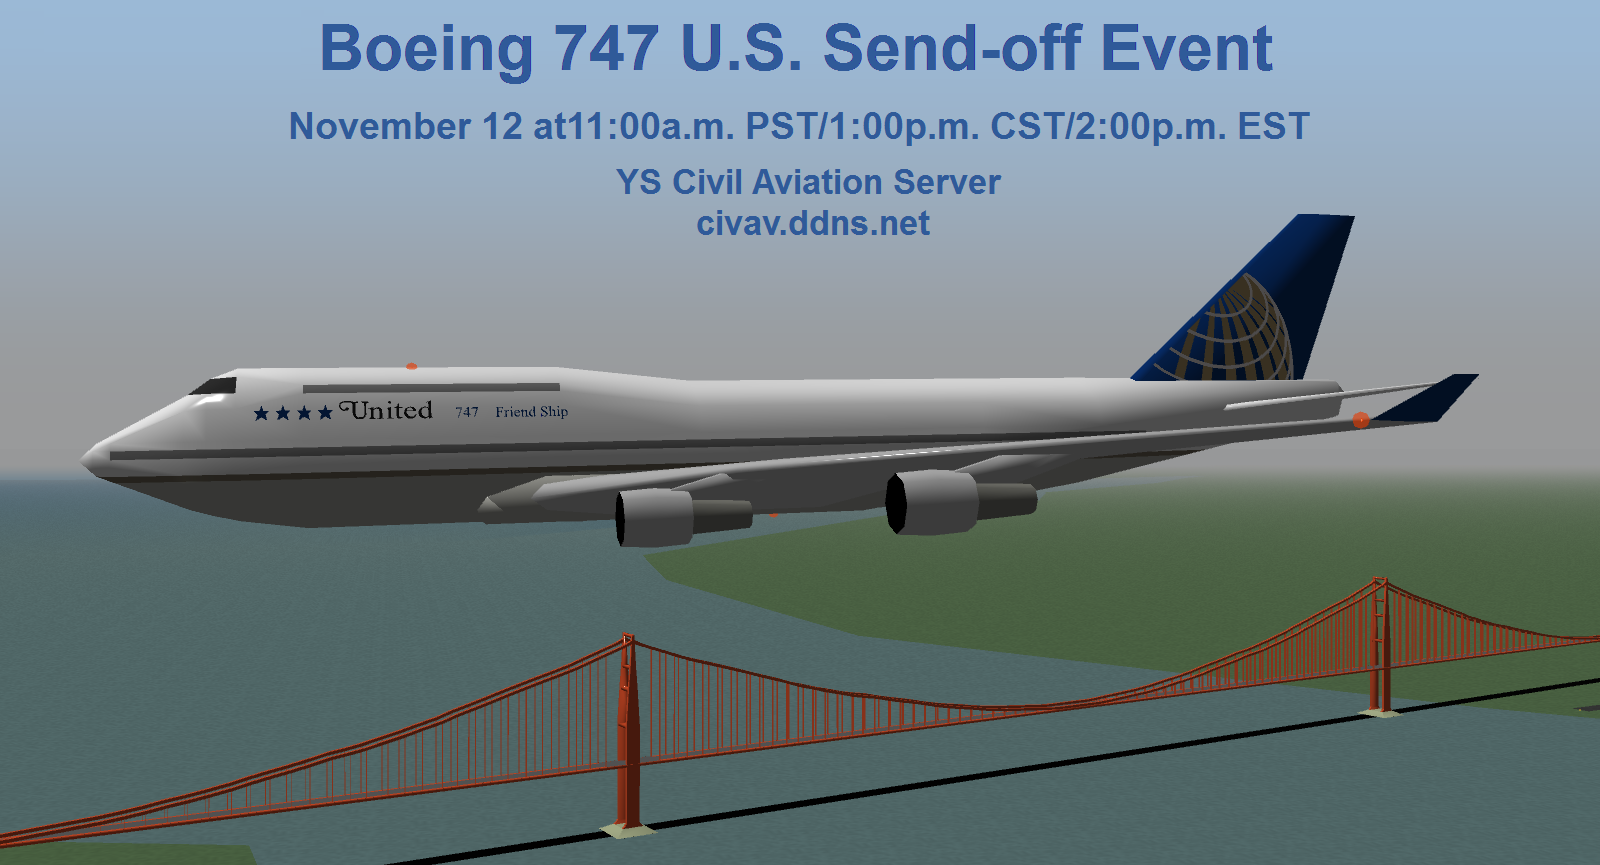 united 747 friend ship event.png